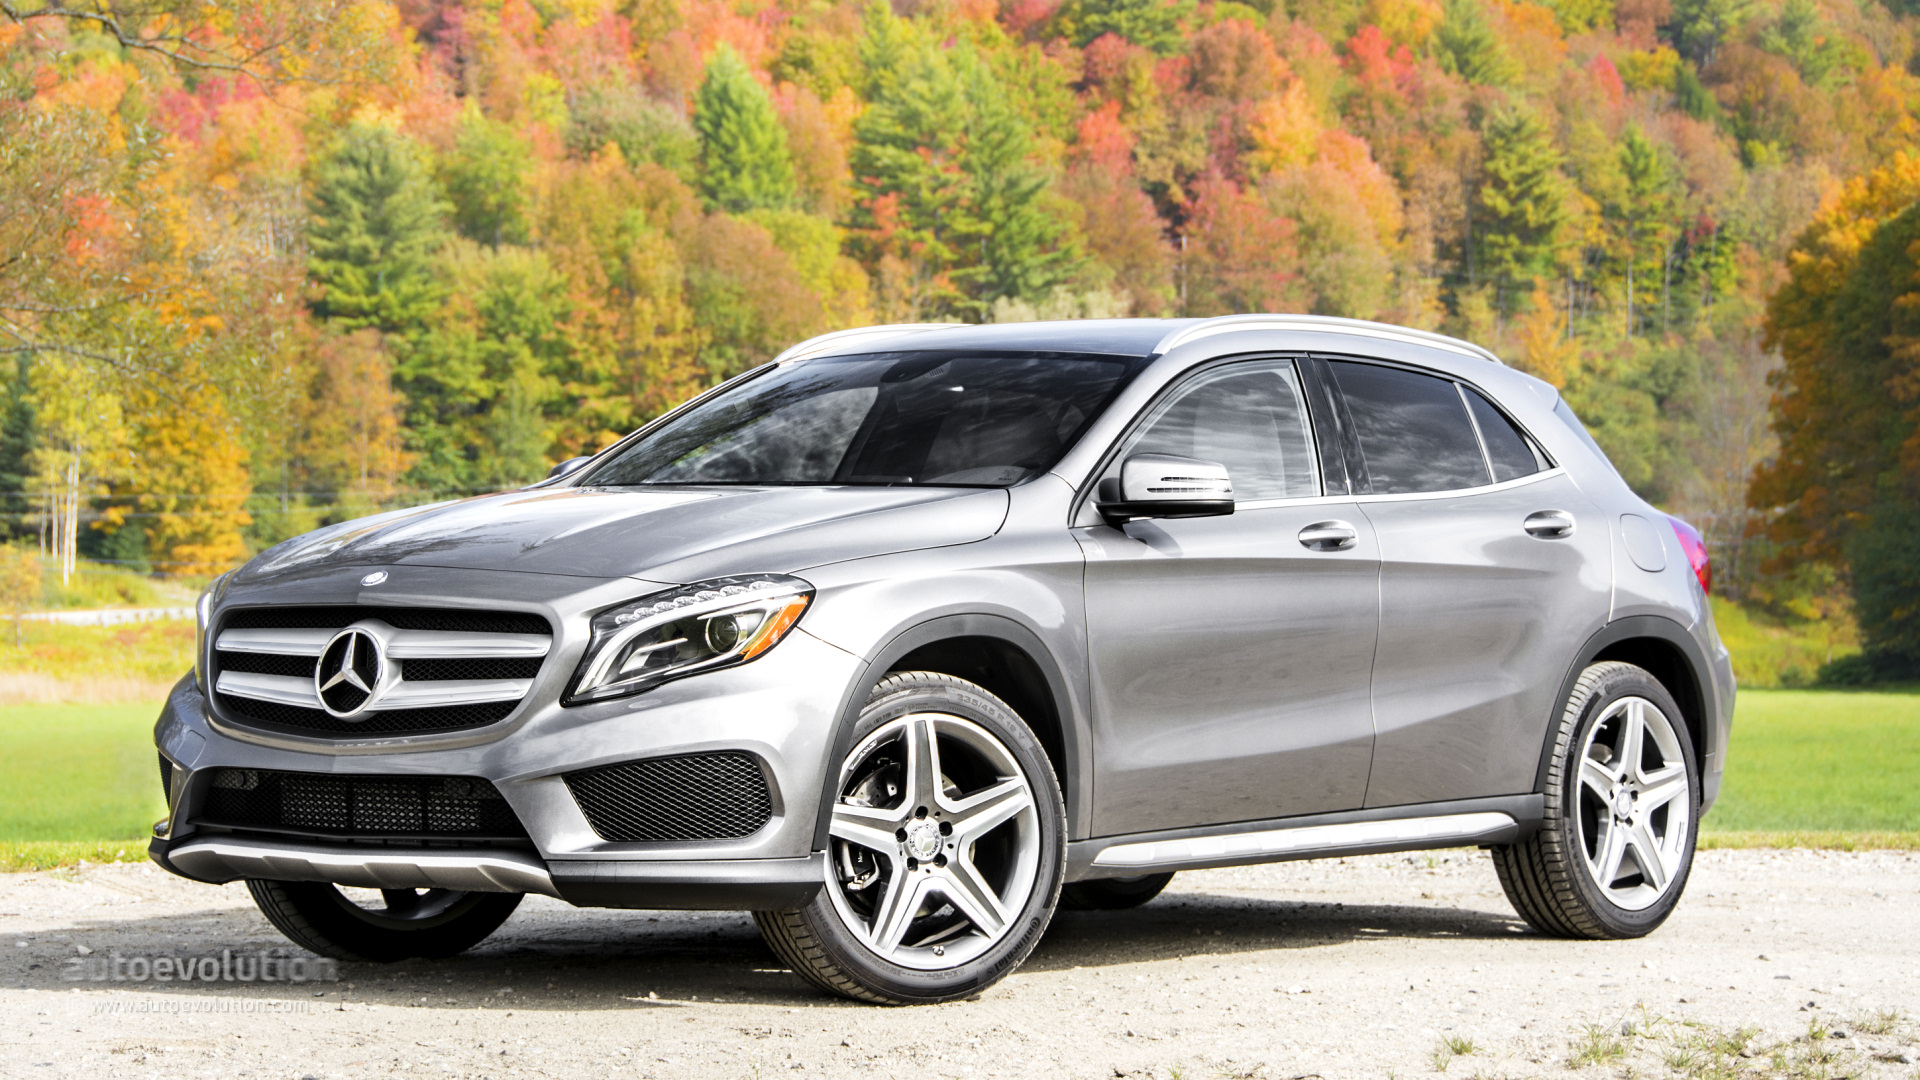 2015 mercedes benz gla250 4matic hd wallpapers autoevolution for 2015 mercedes benz gla250